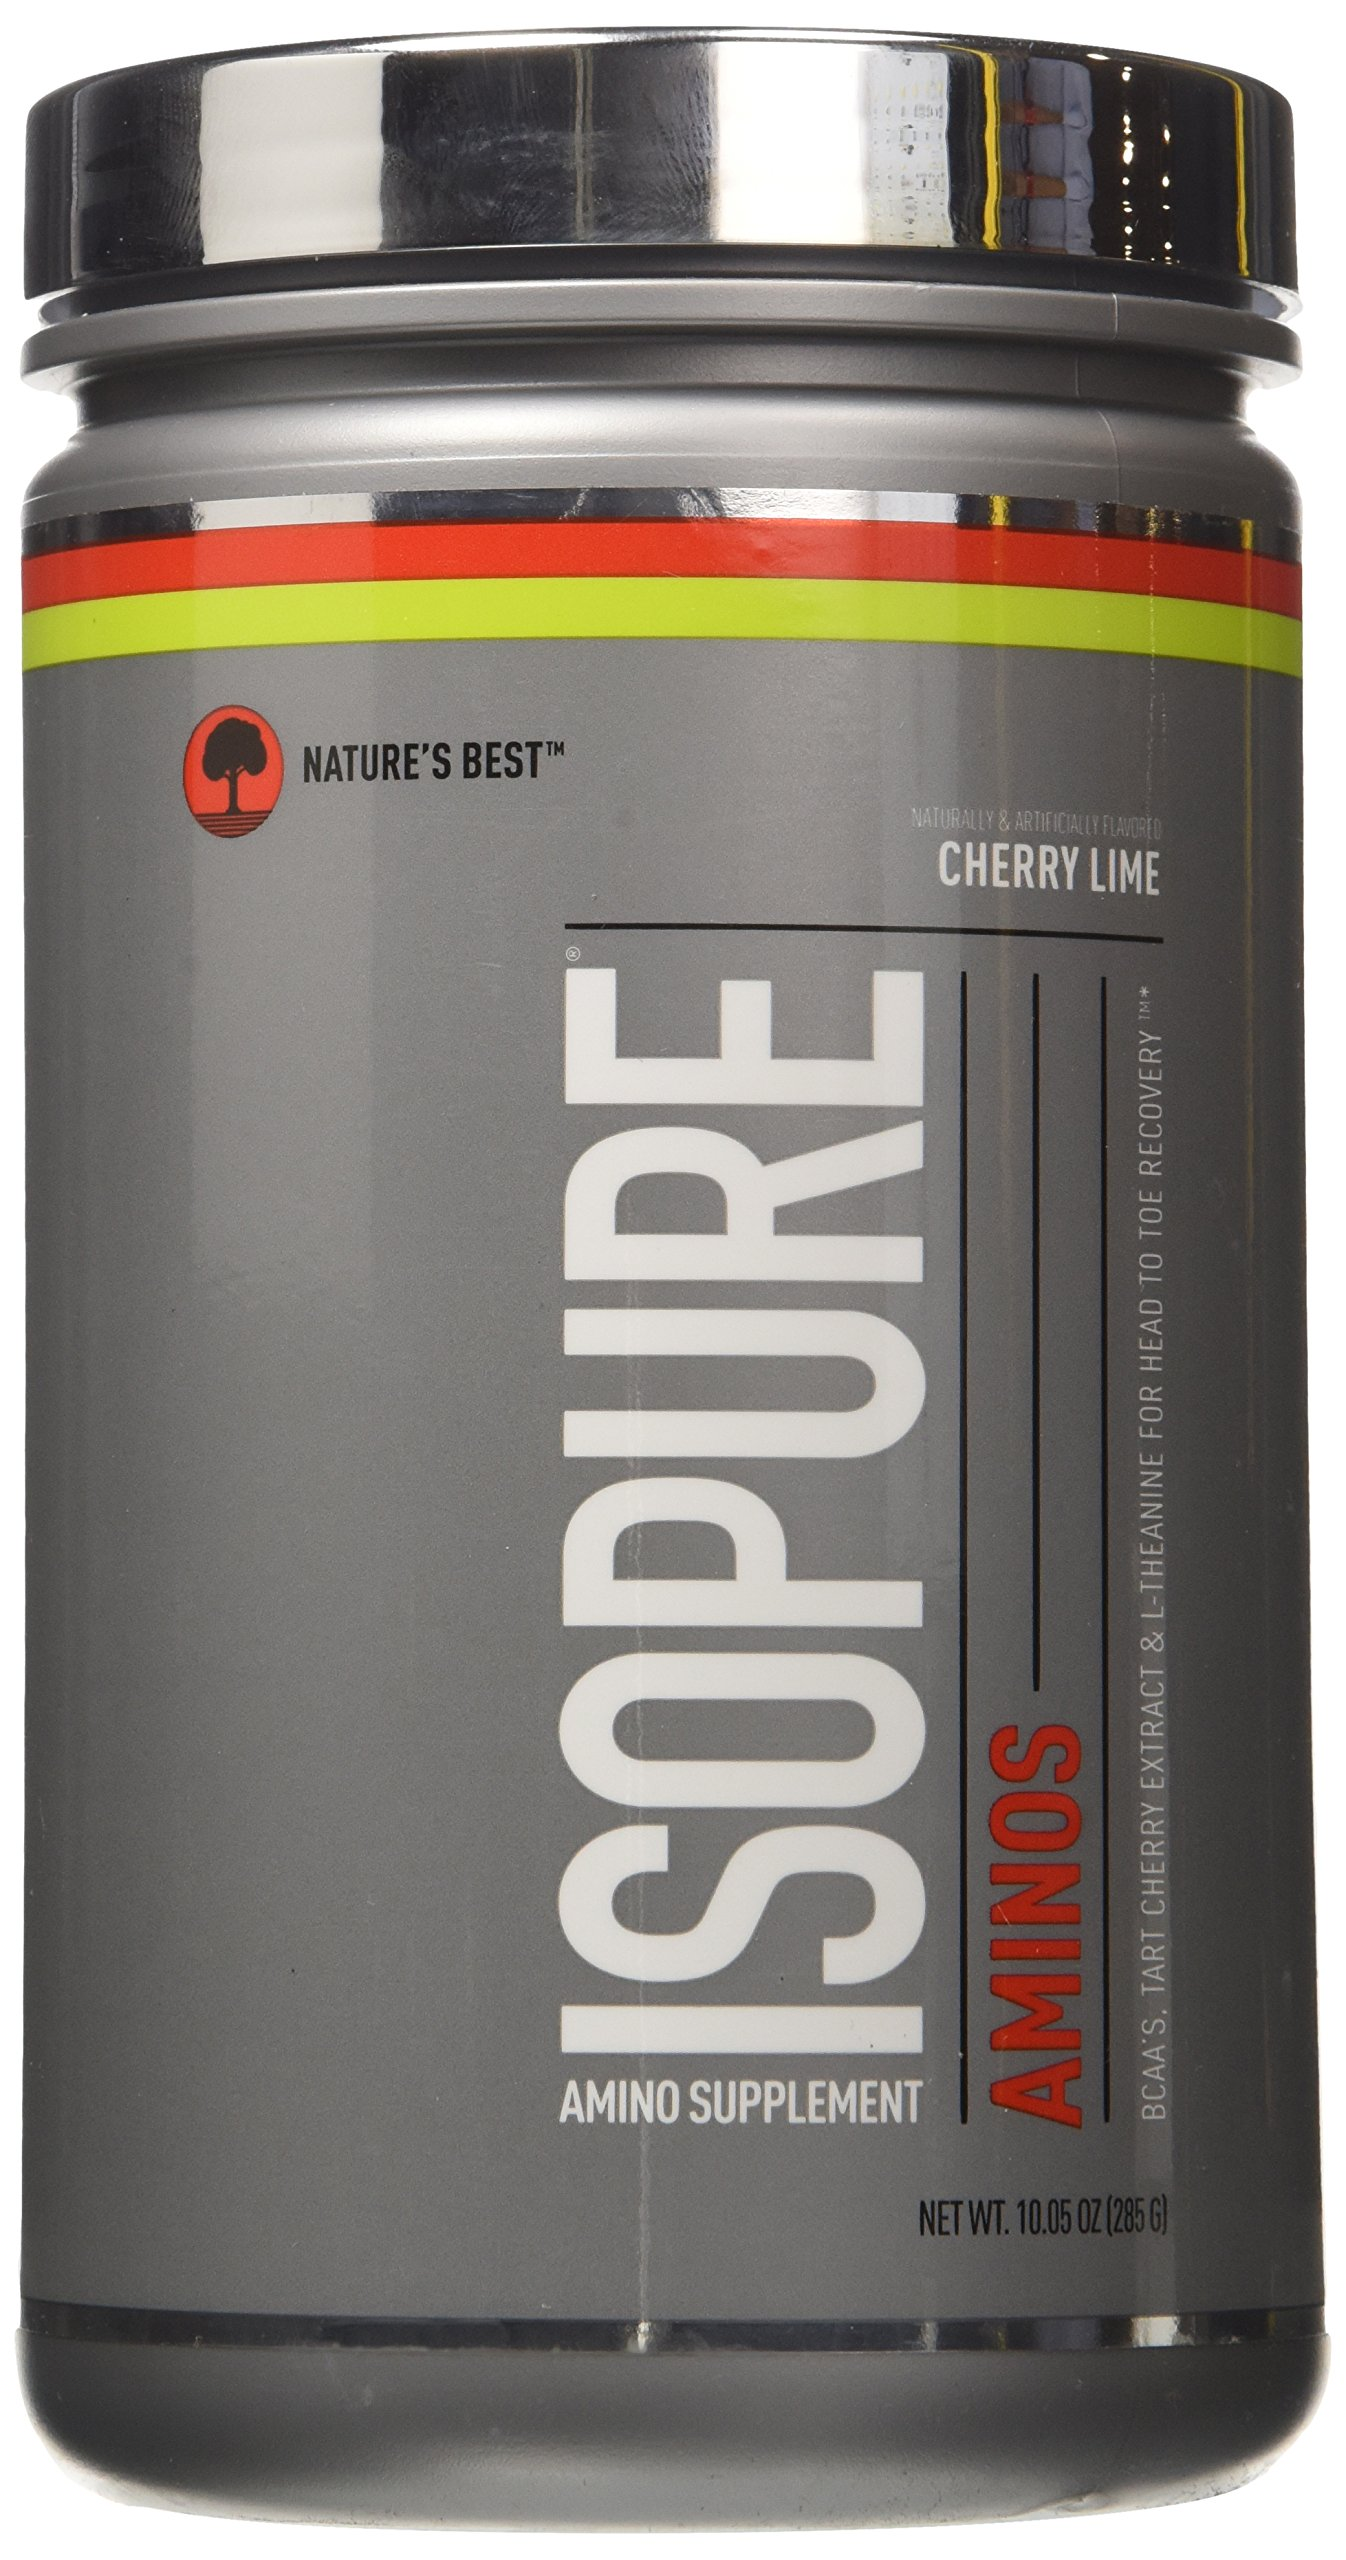 Isopure Amino Supplement, with BCAAs, Essential Amino Acids and L-Theanine, Flavor: Cherry Lime, 285 Gram